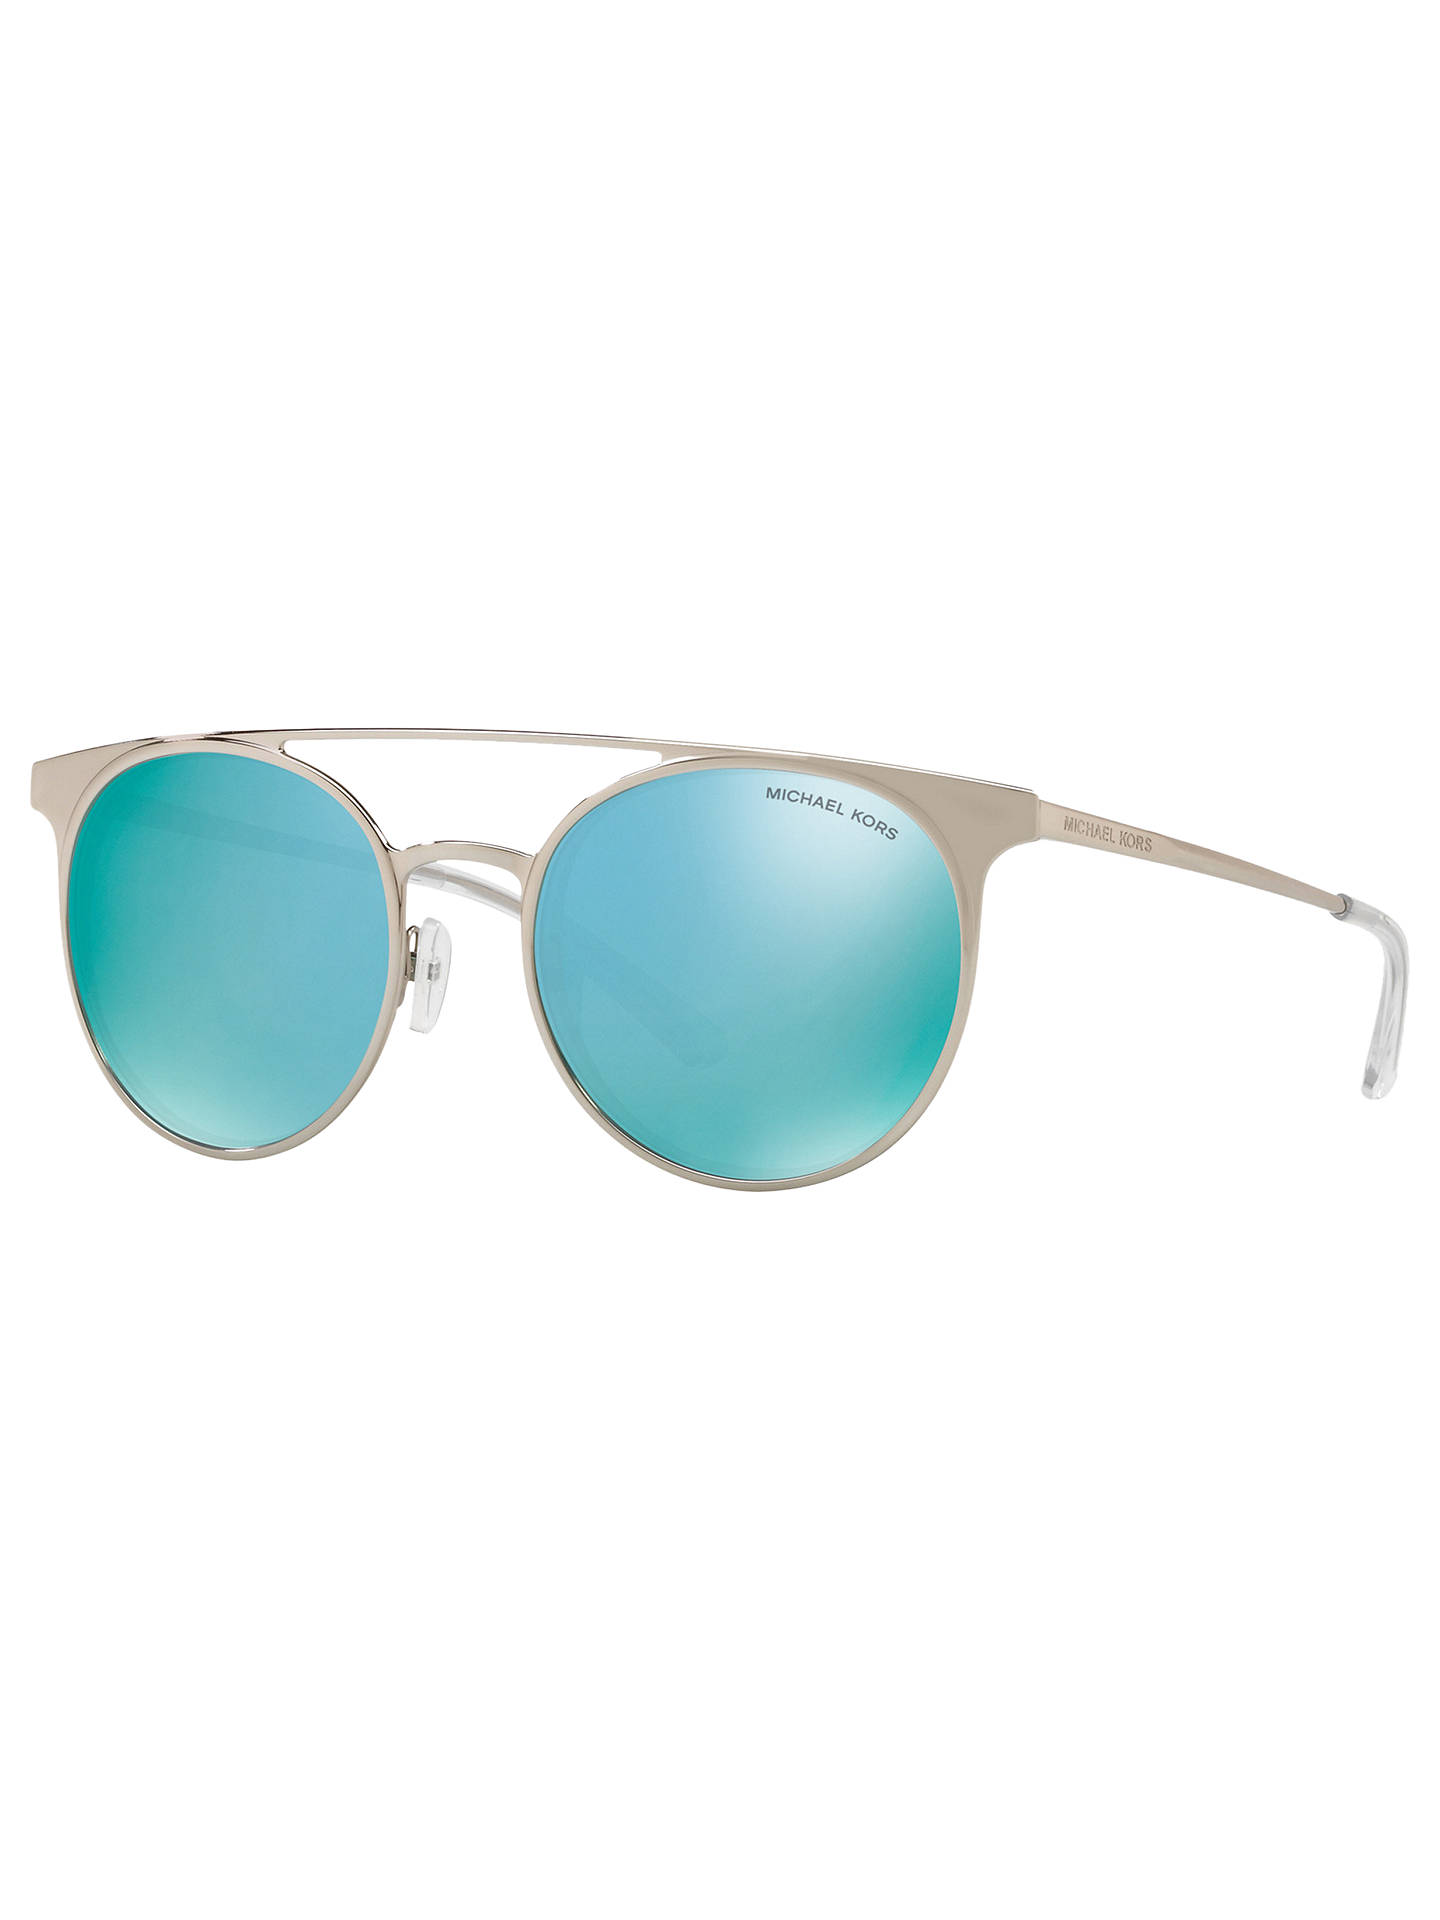 49d749454438 Buy Michael Kors MK1030 Women's Grayton Round Sunglasses, Silver/Mirror  Blue Online at johnlewis ...